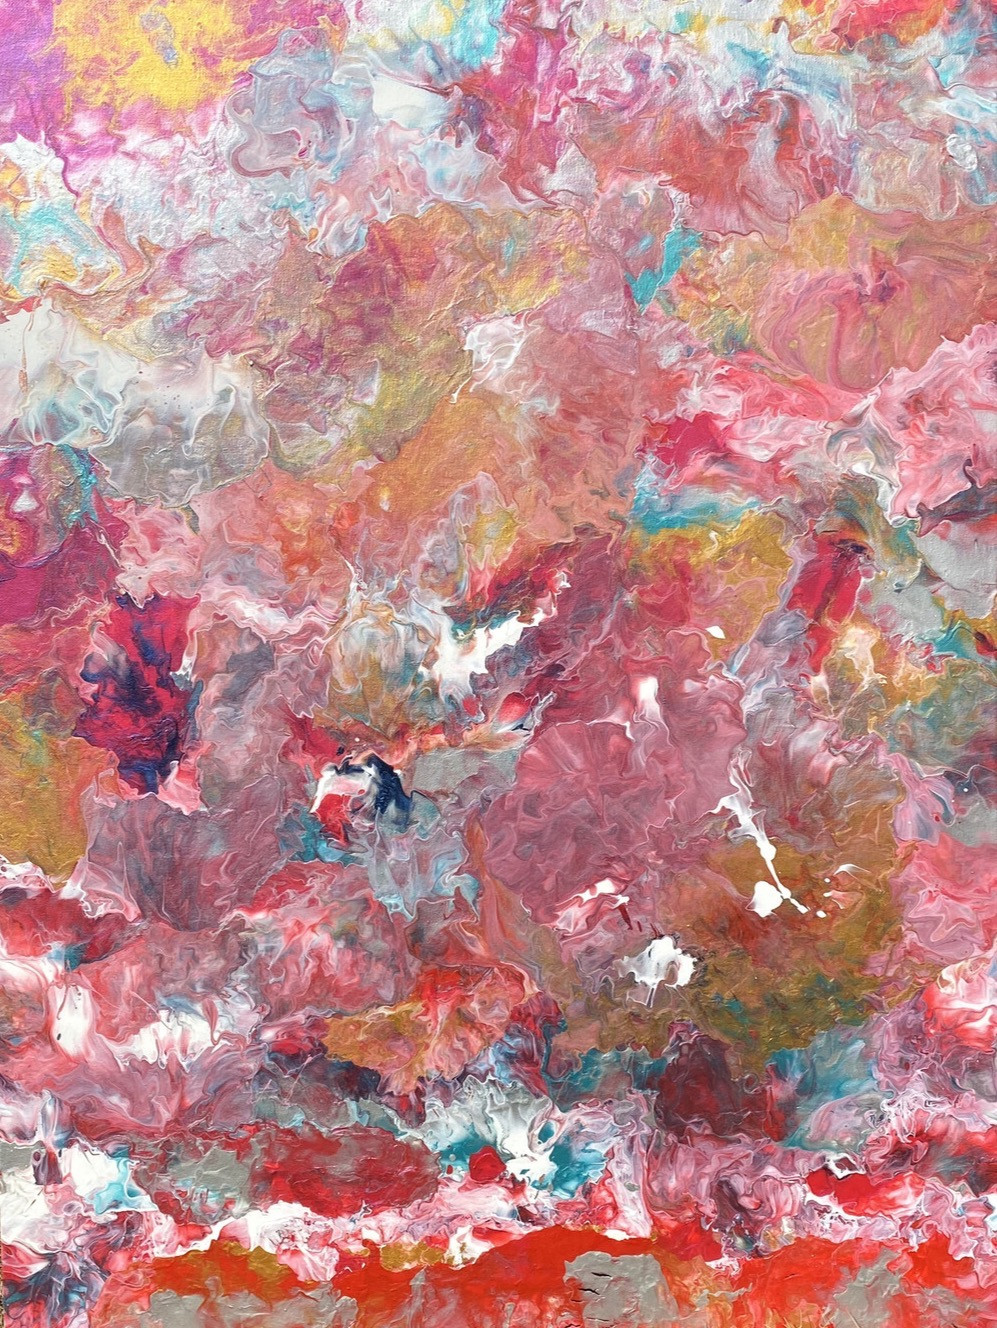 Fluid painting by Alessia Camoirano Bruges and poetry